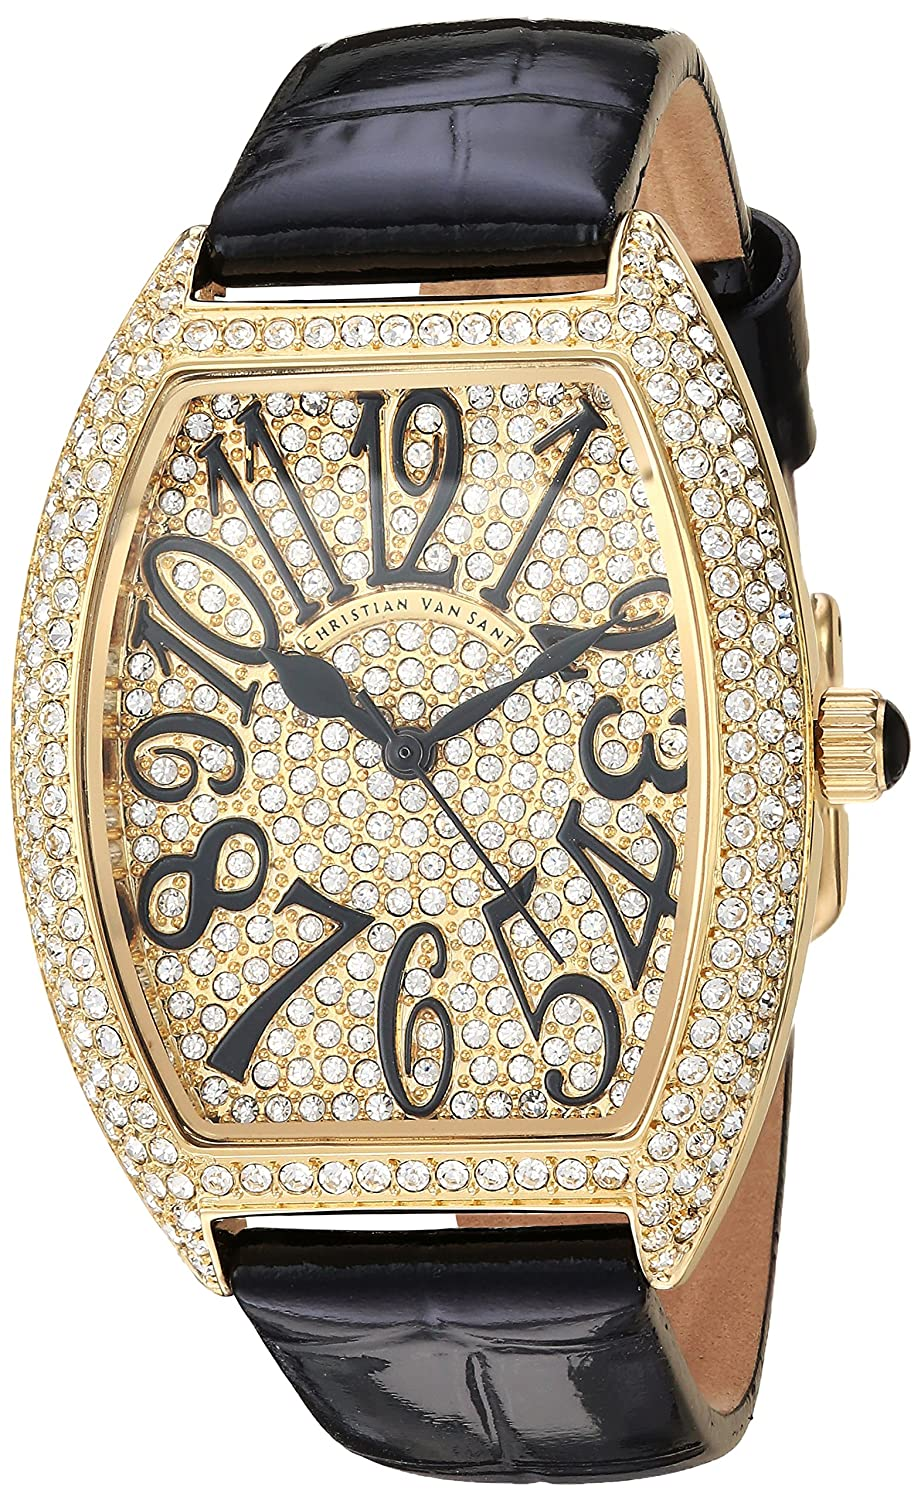 Christian Van Sant Women 's 'エレガント'クオーツBrass andレザーCasual Watch, Color : Black (Model : cv4820 ) B079S1C1PS